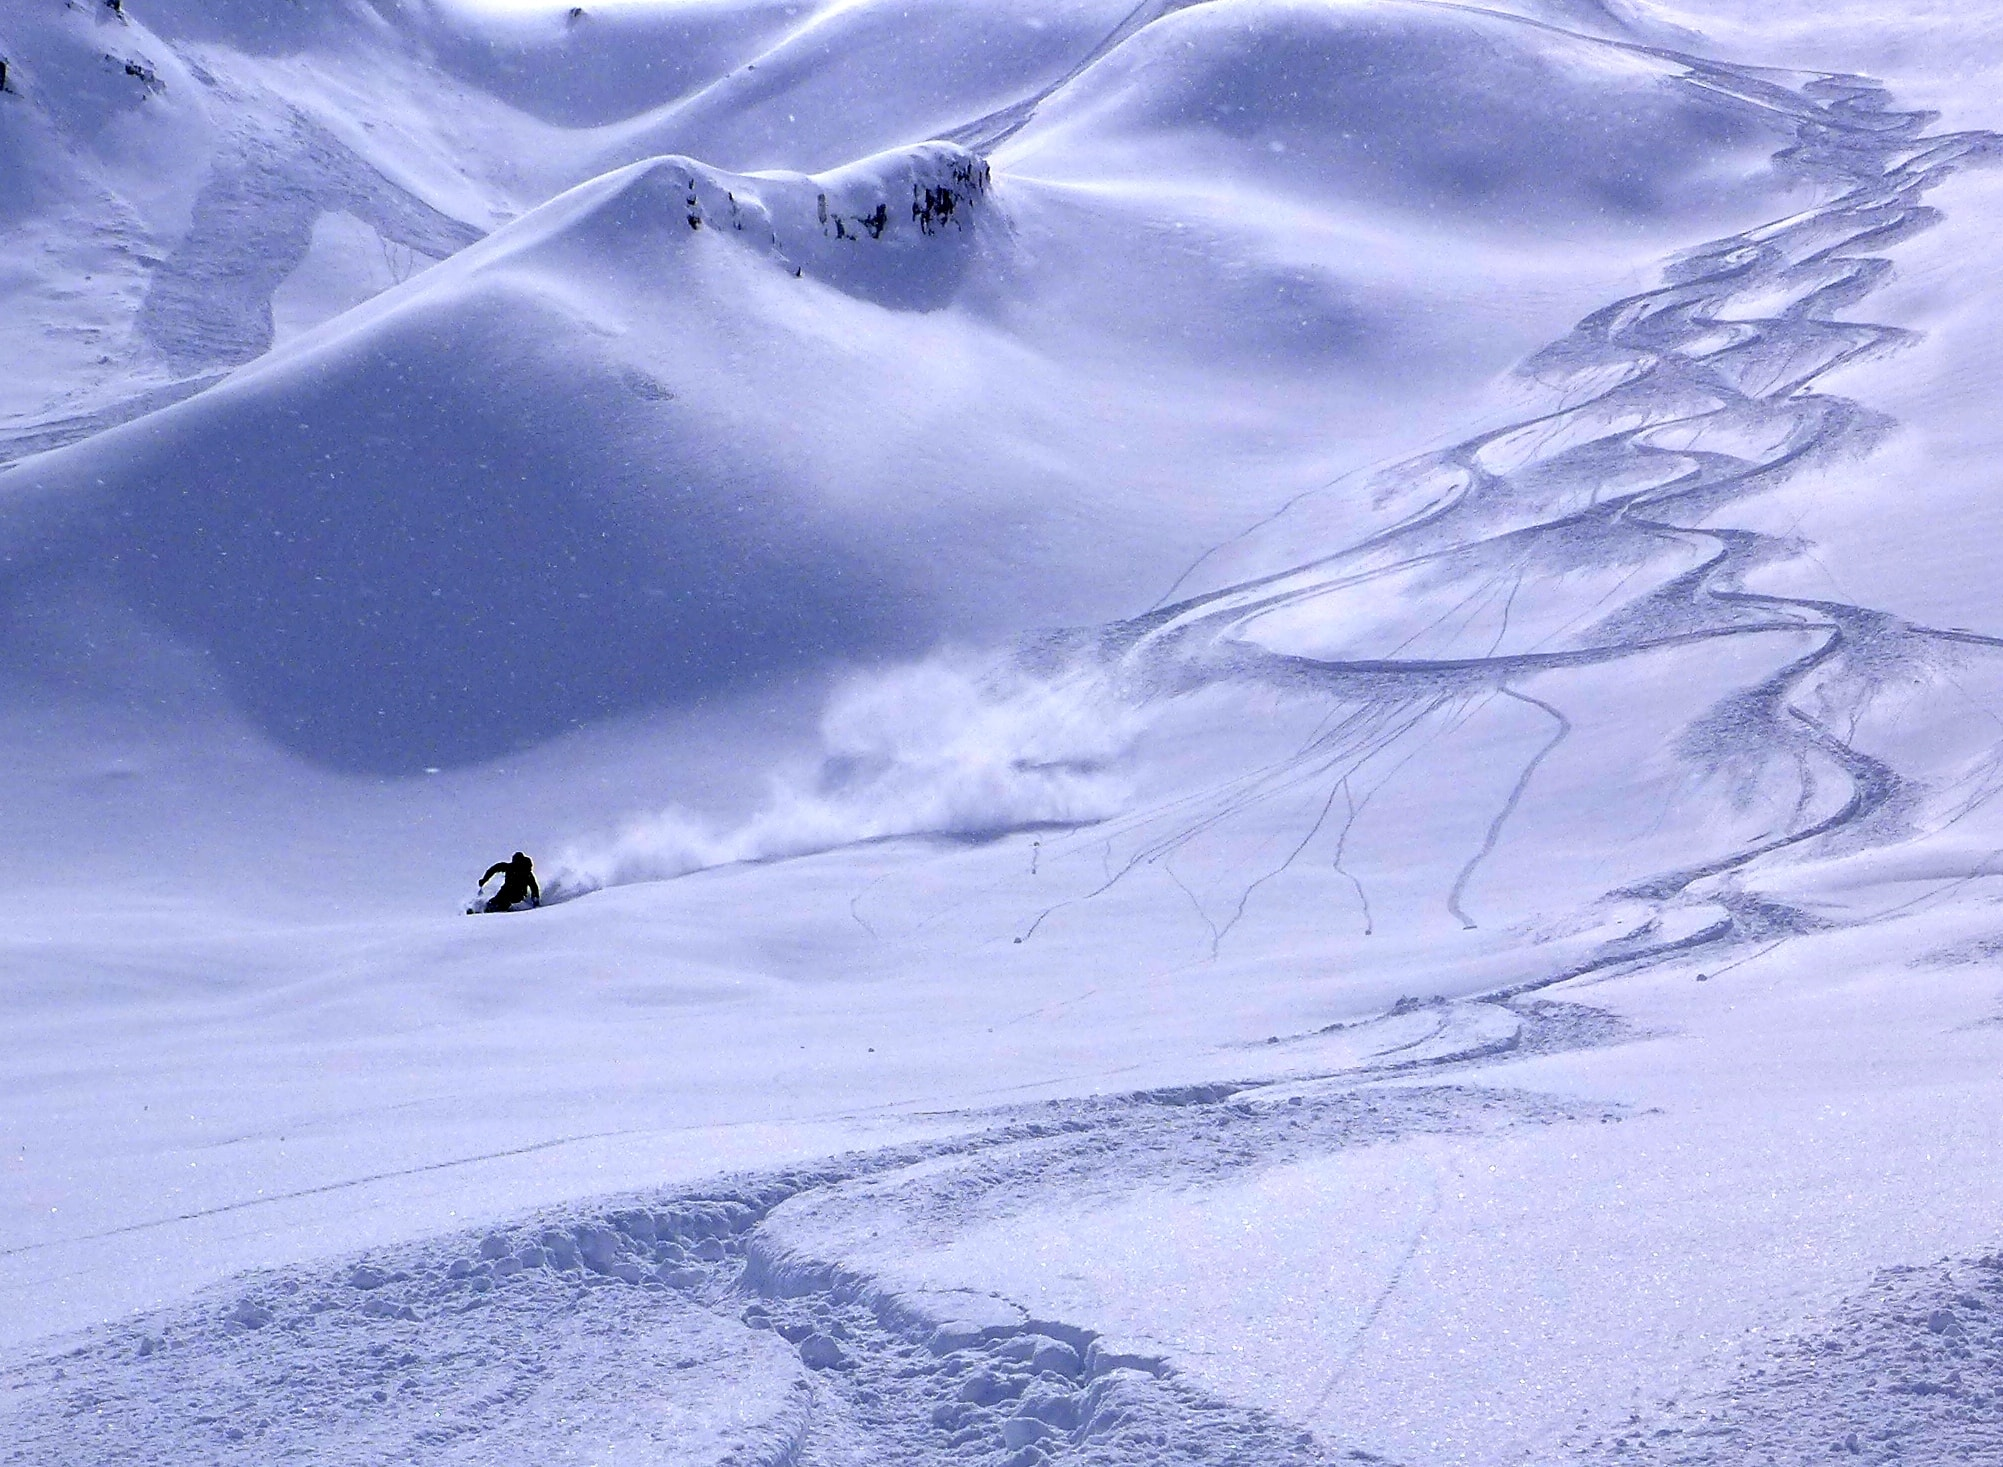 Simon Eger - Powder Skiing